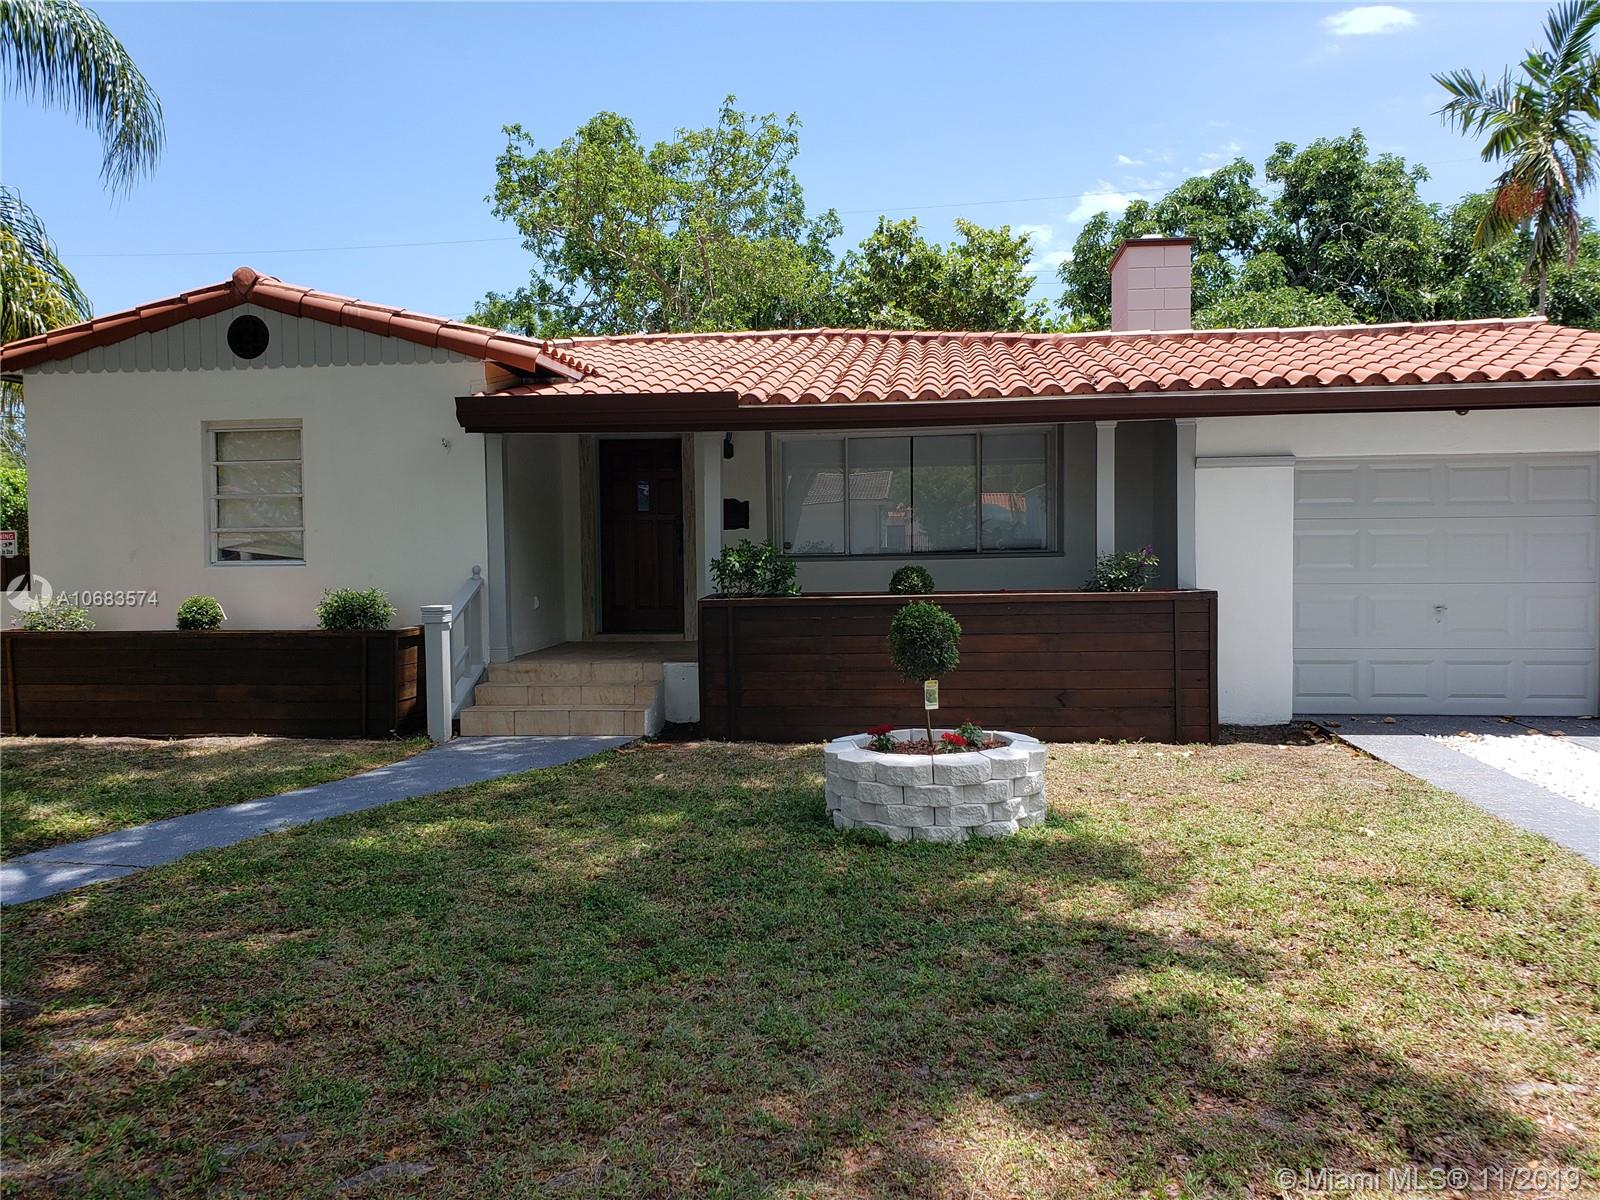 Undisclosed For Sale A10683574, FL